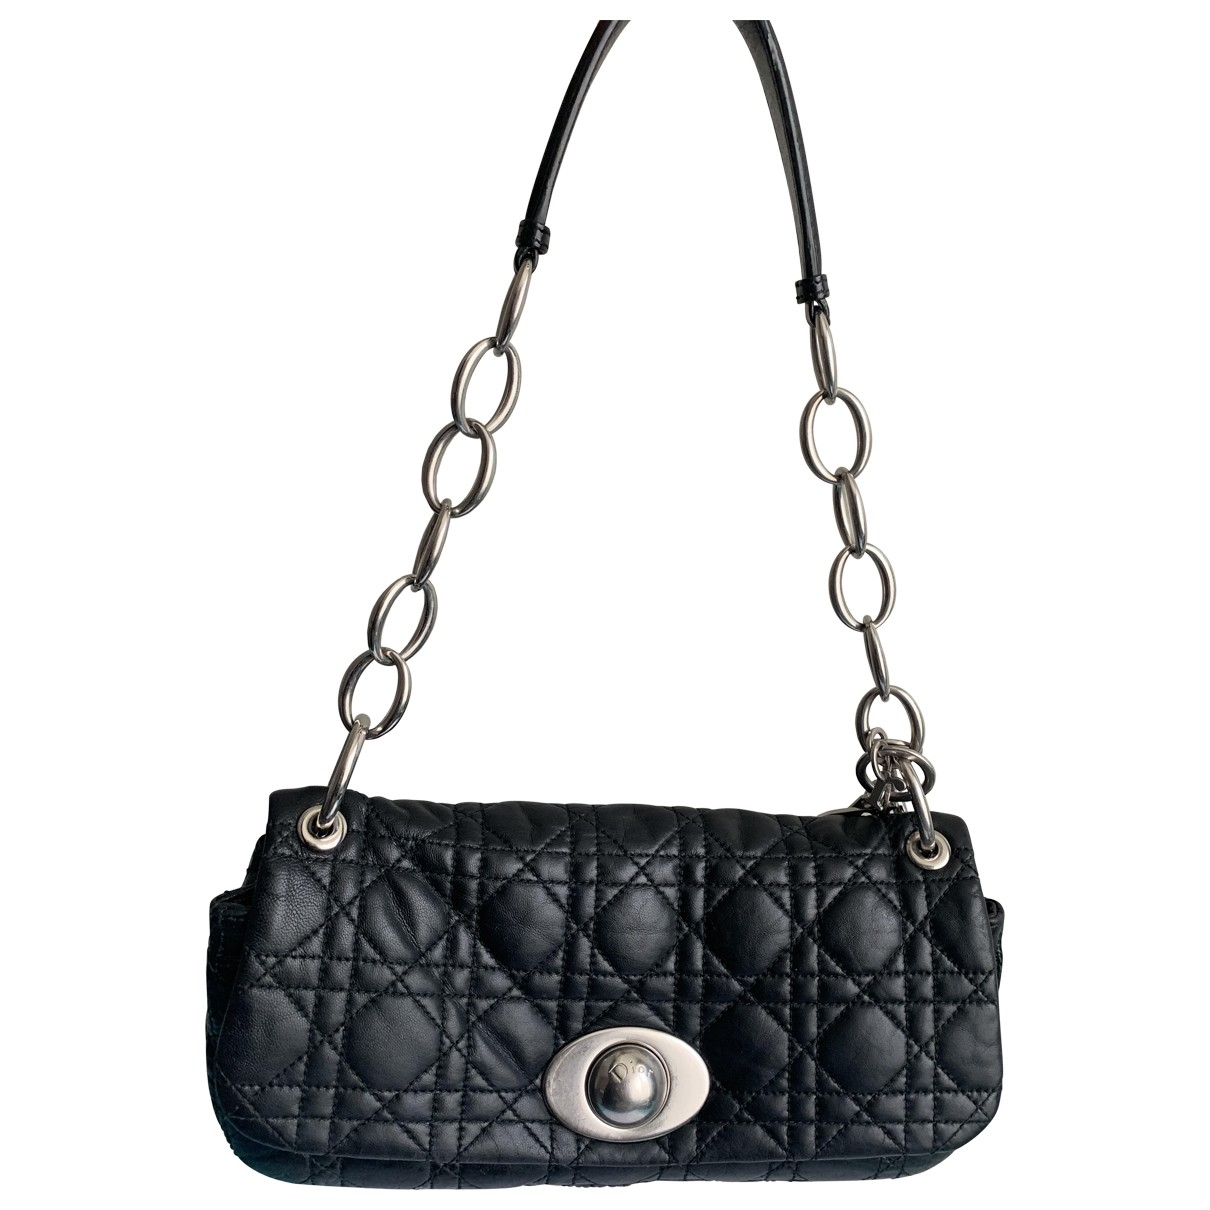 Dior \N Black Leather handbag for Women \N